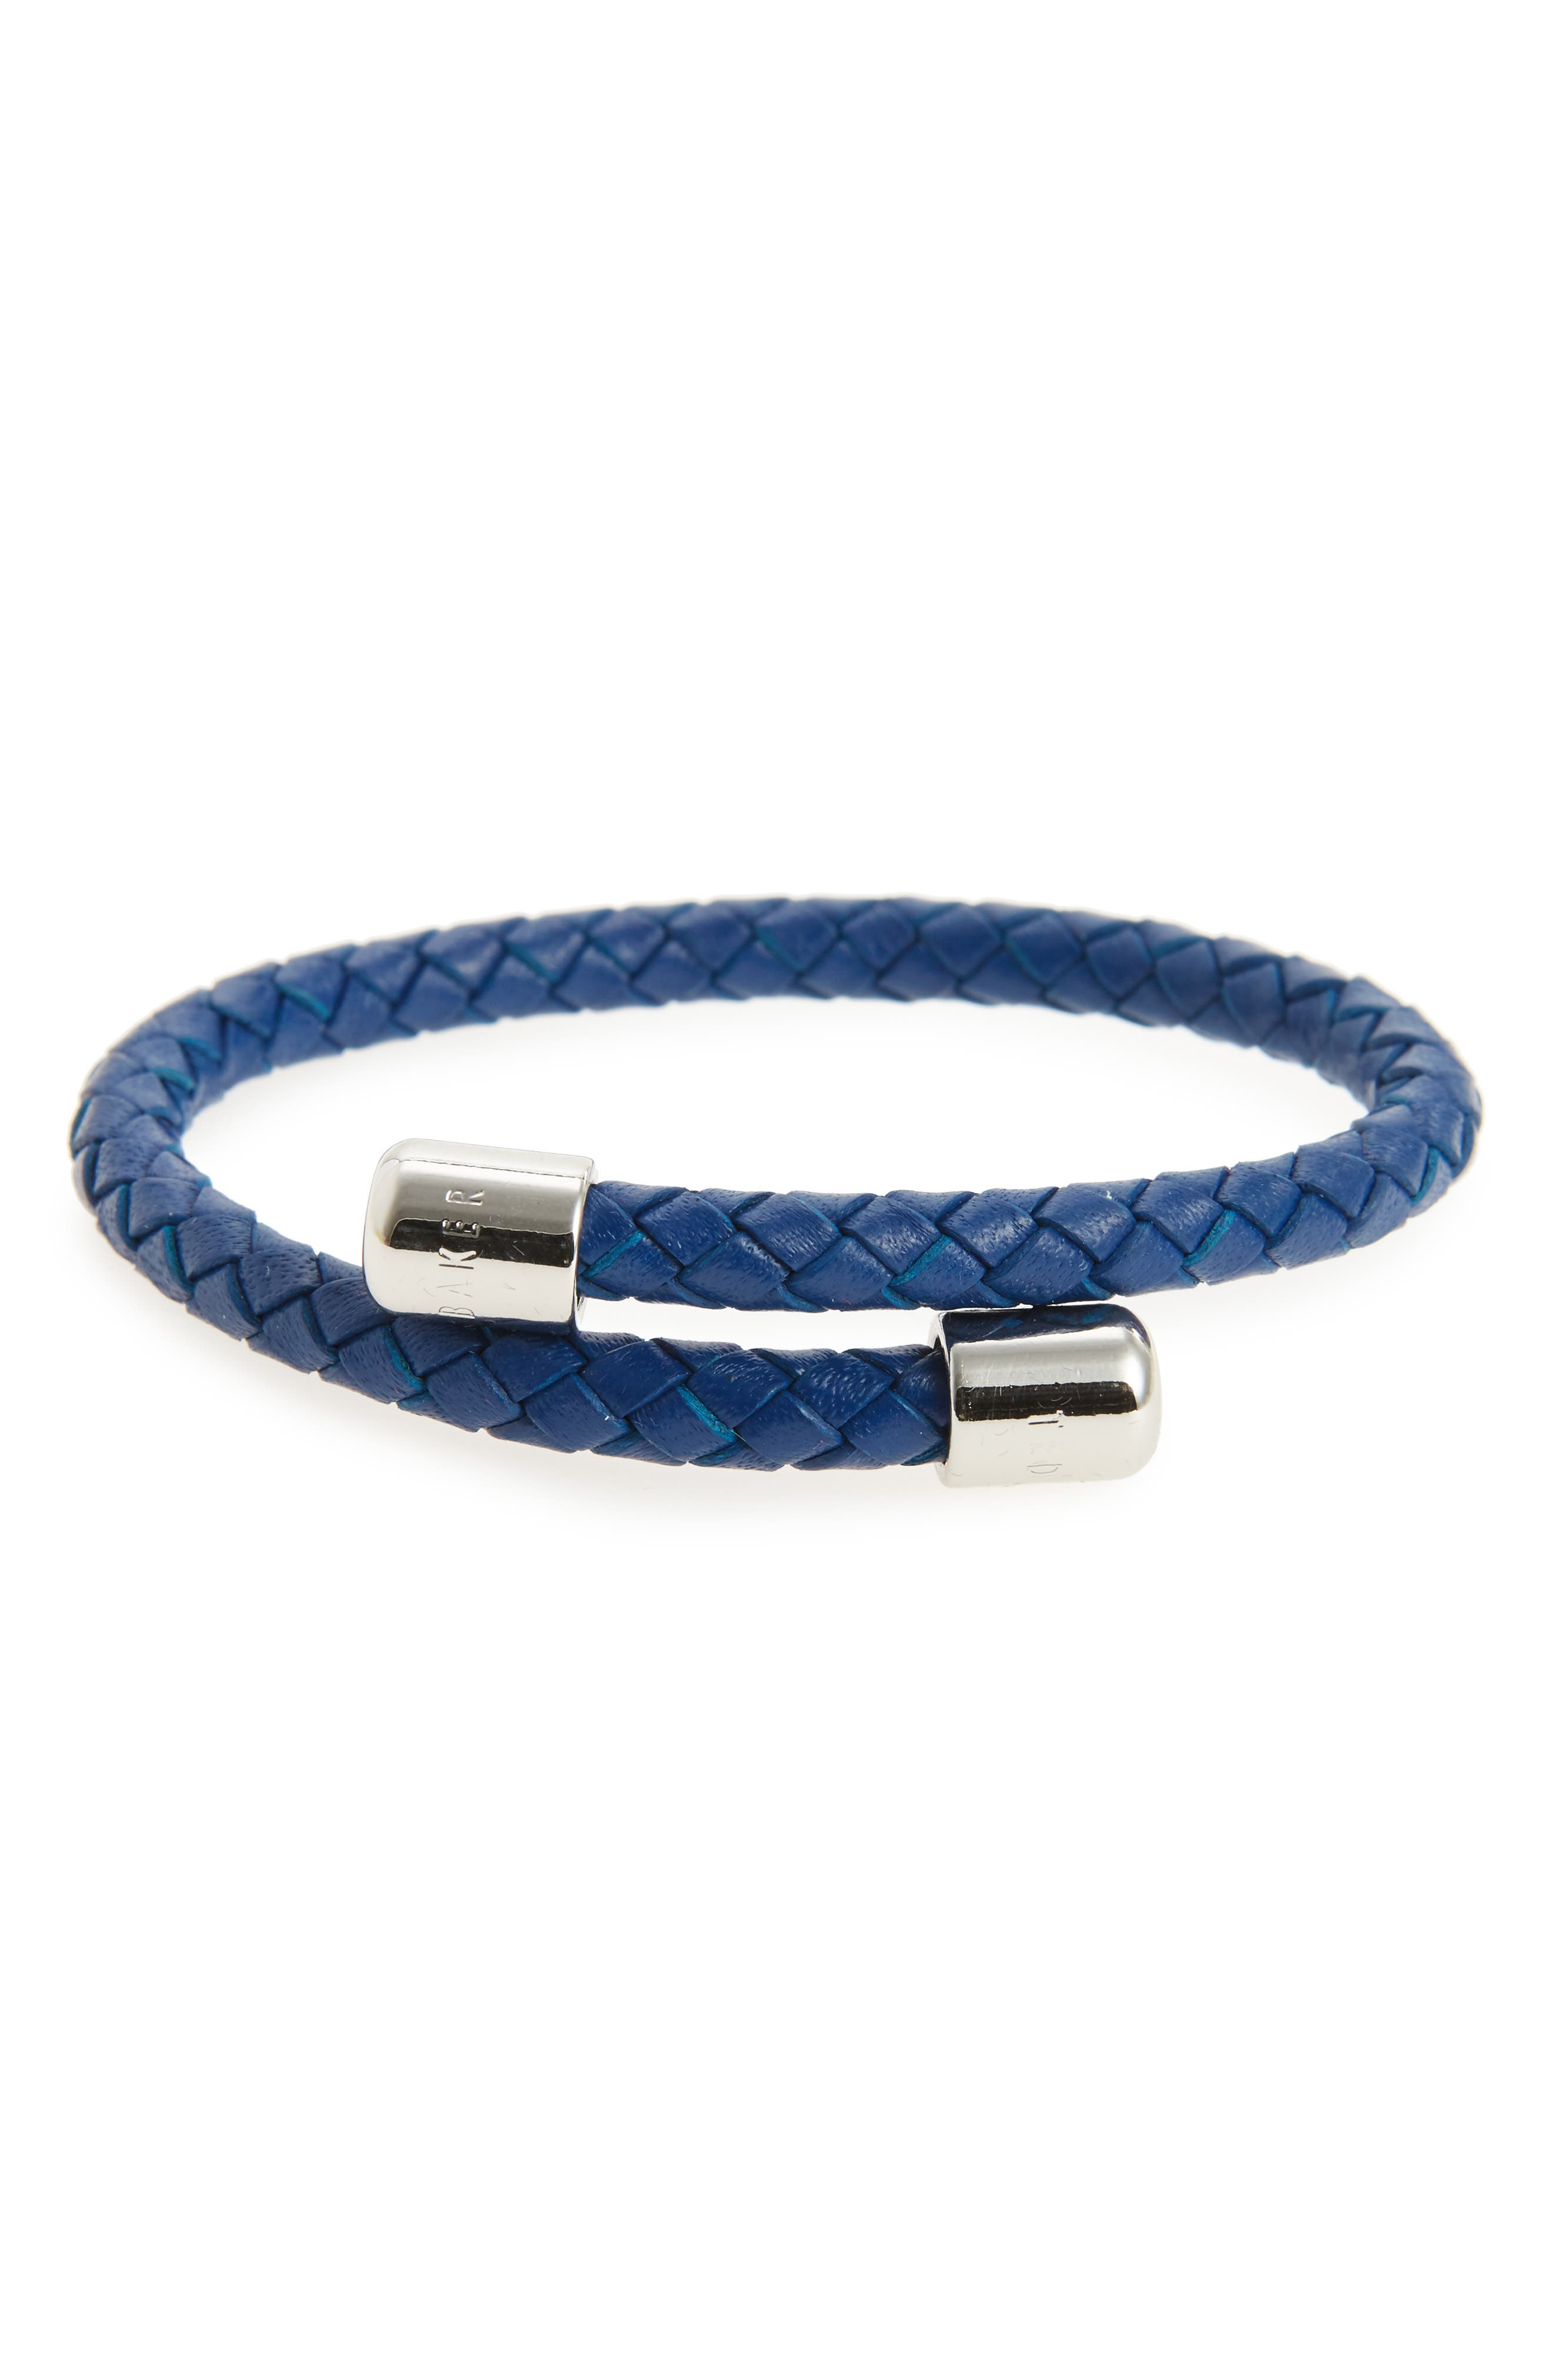 Main Image - Ted Baker London Bassett Braided Leather Bracelet